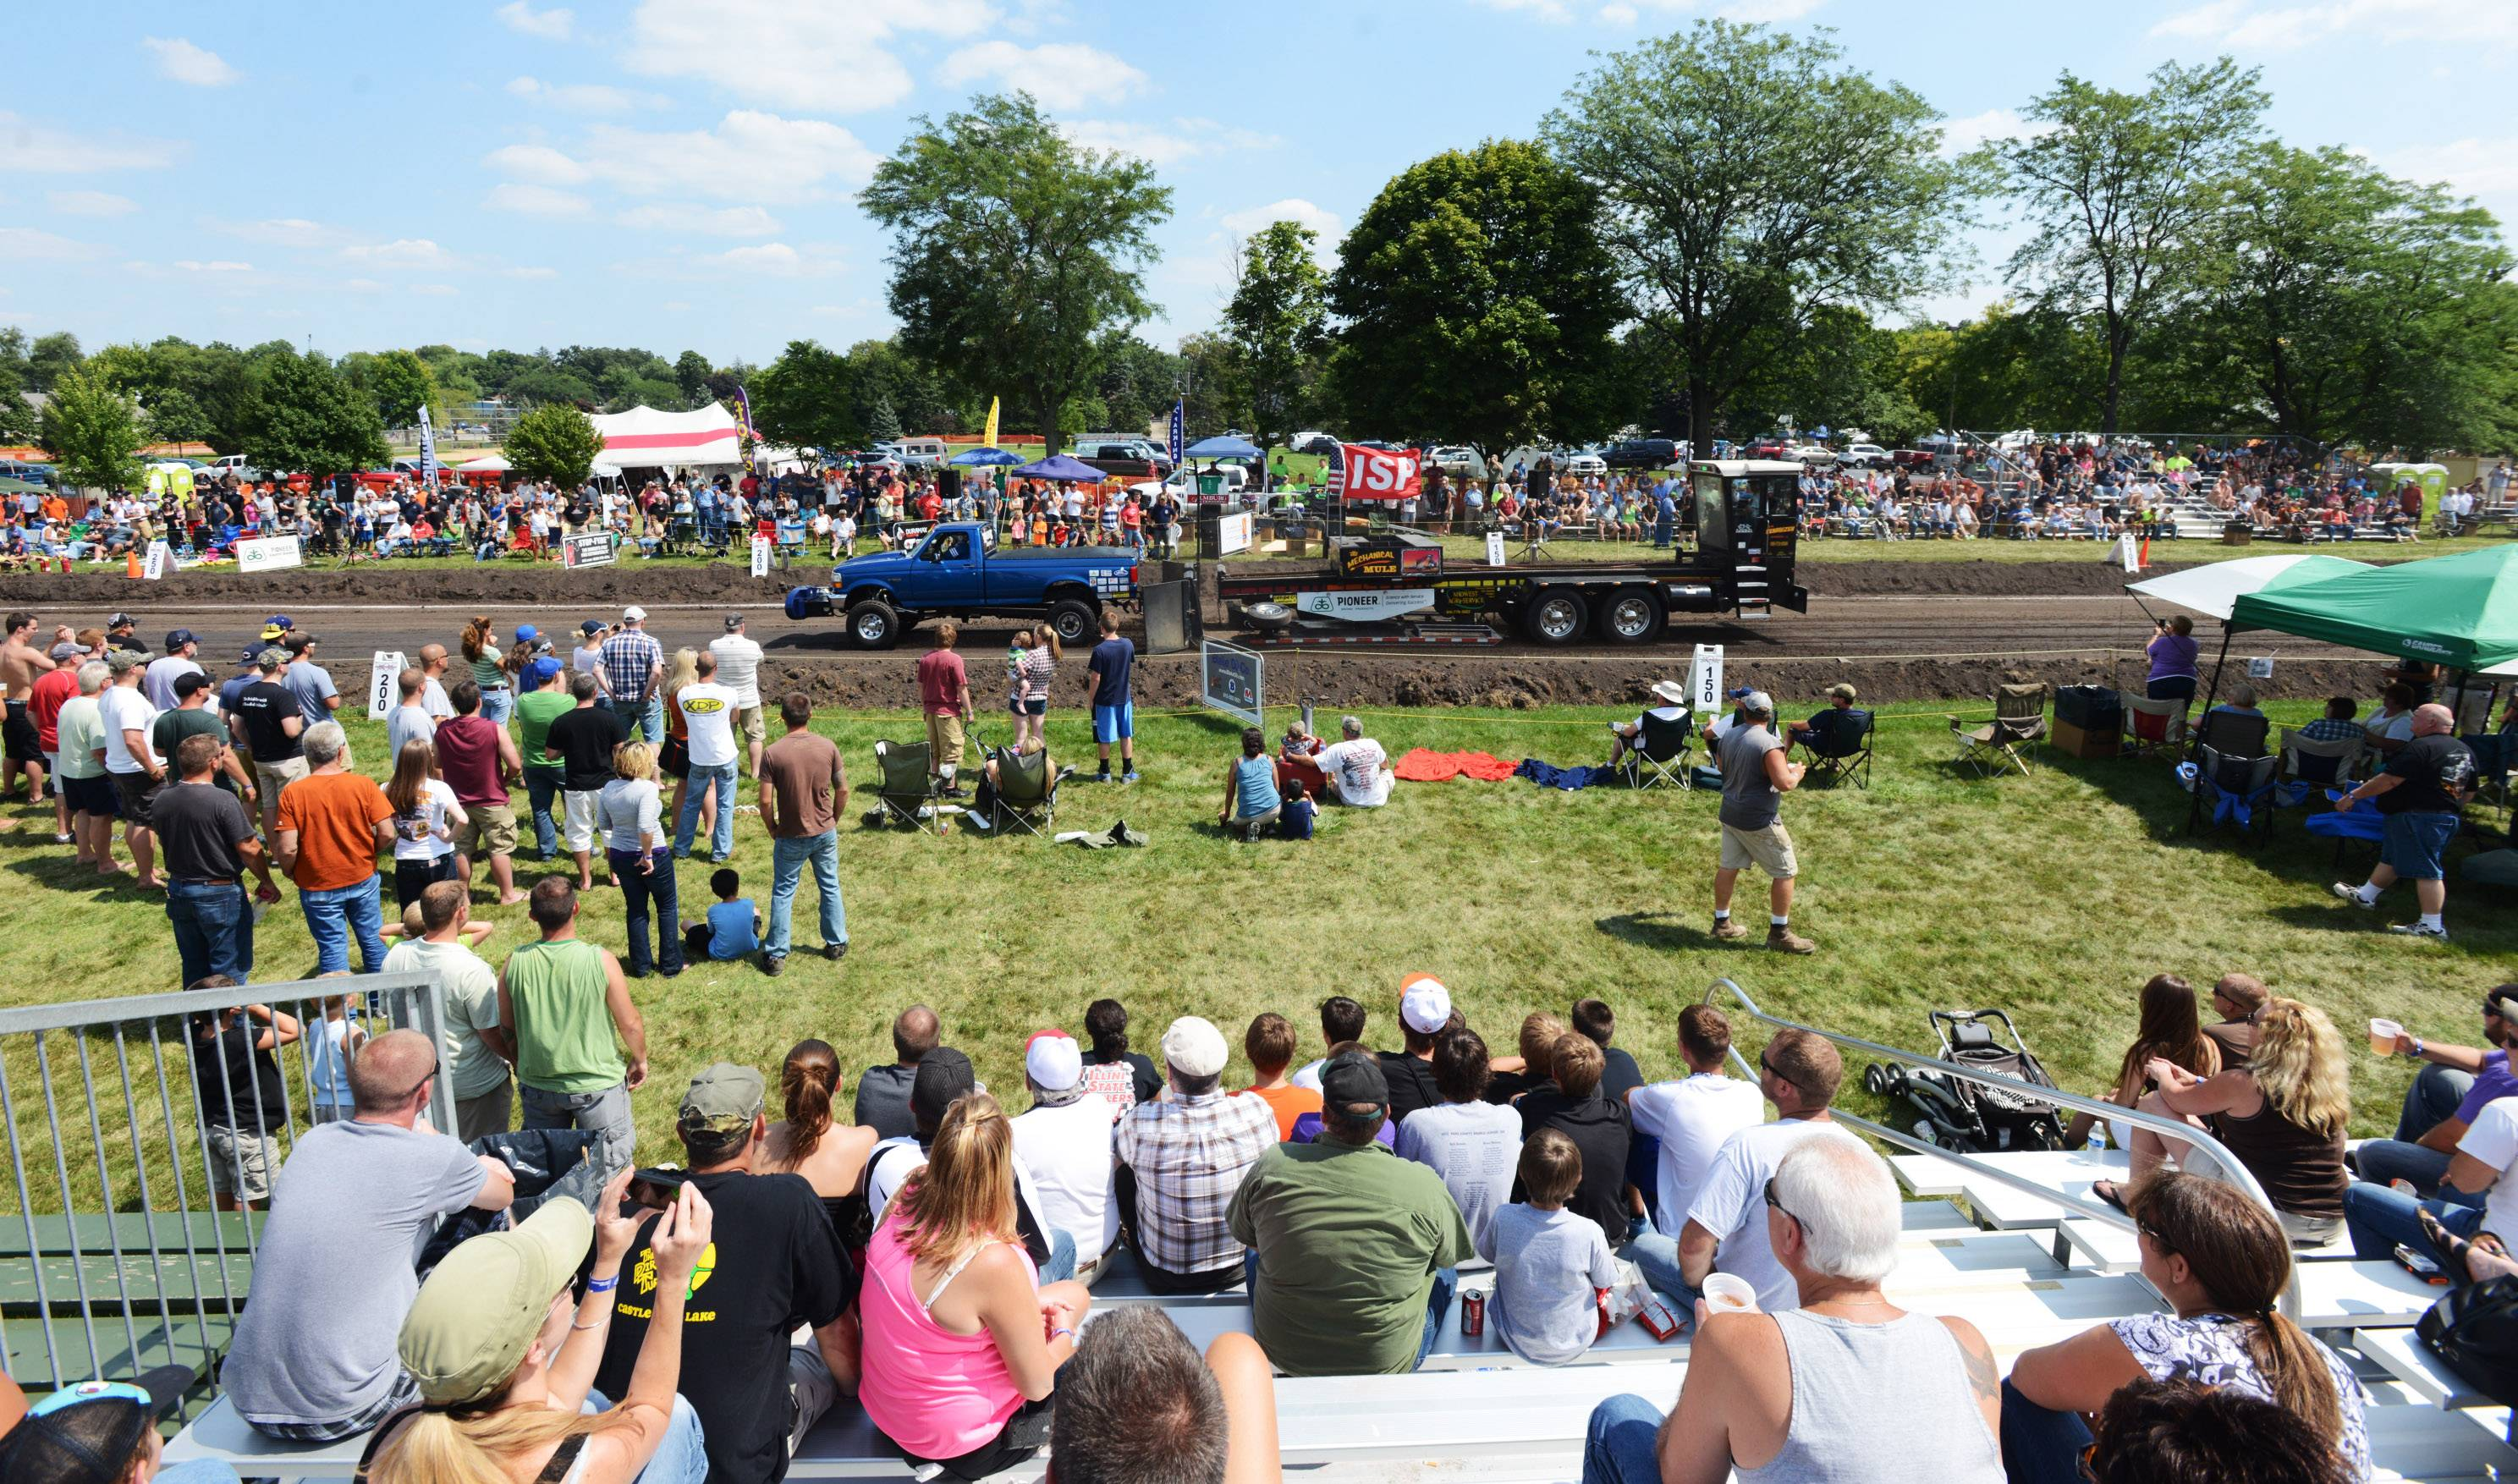 A large crowd gathers to watch the truck pull at last year's Elburn Days Festival.